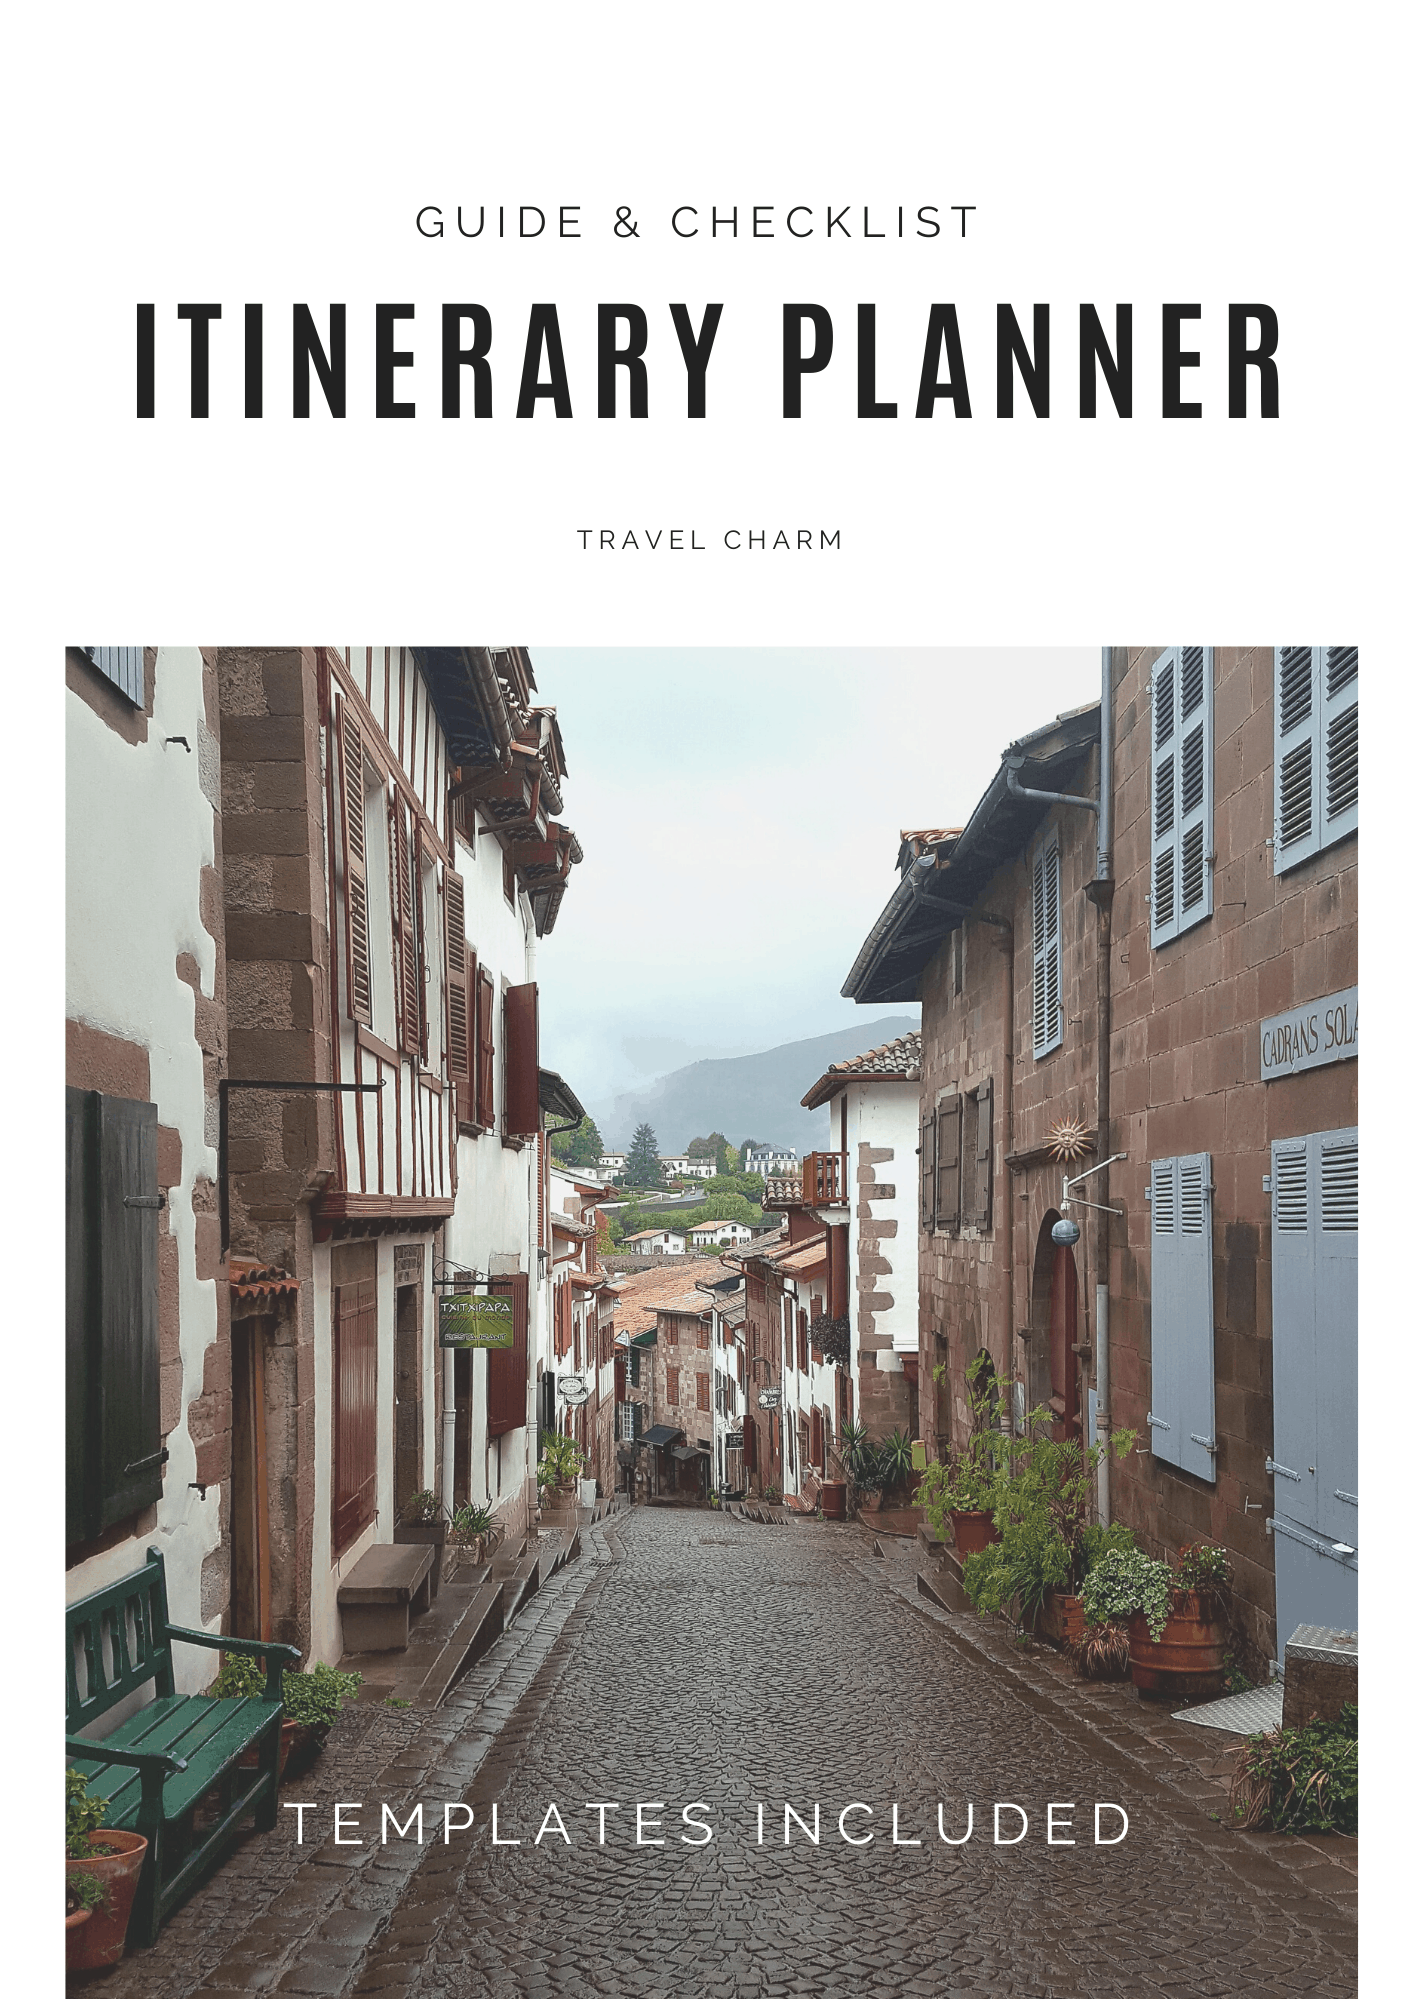 Itinerary Planner Guide & Checklist